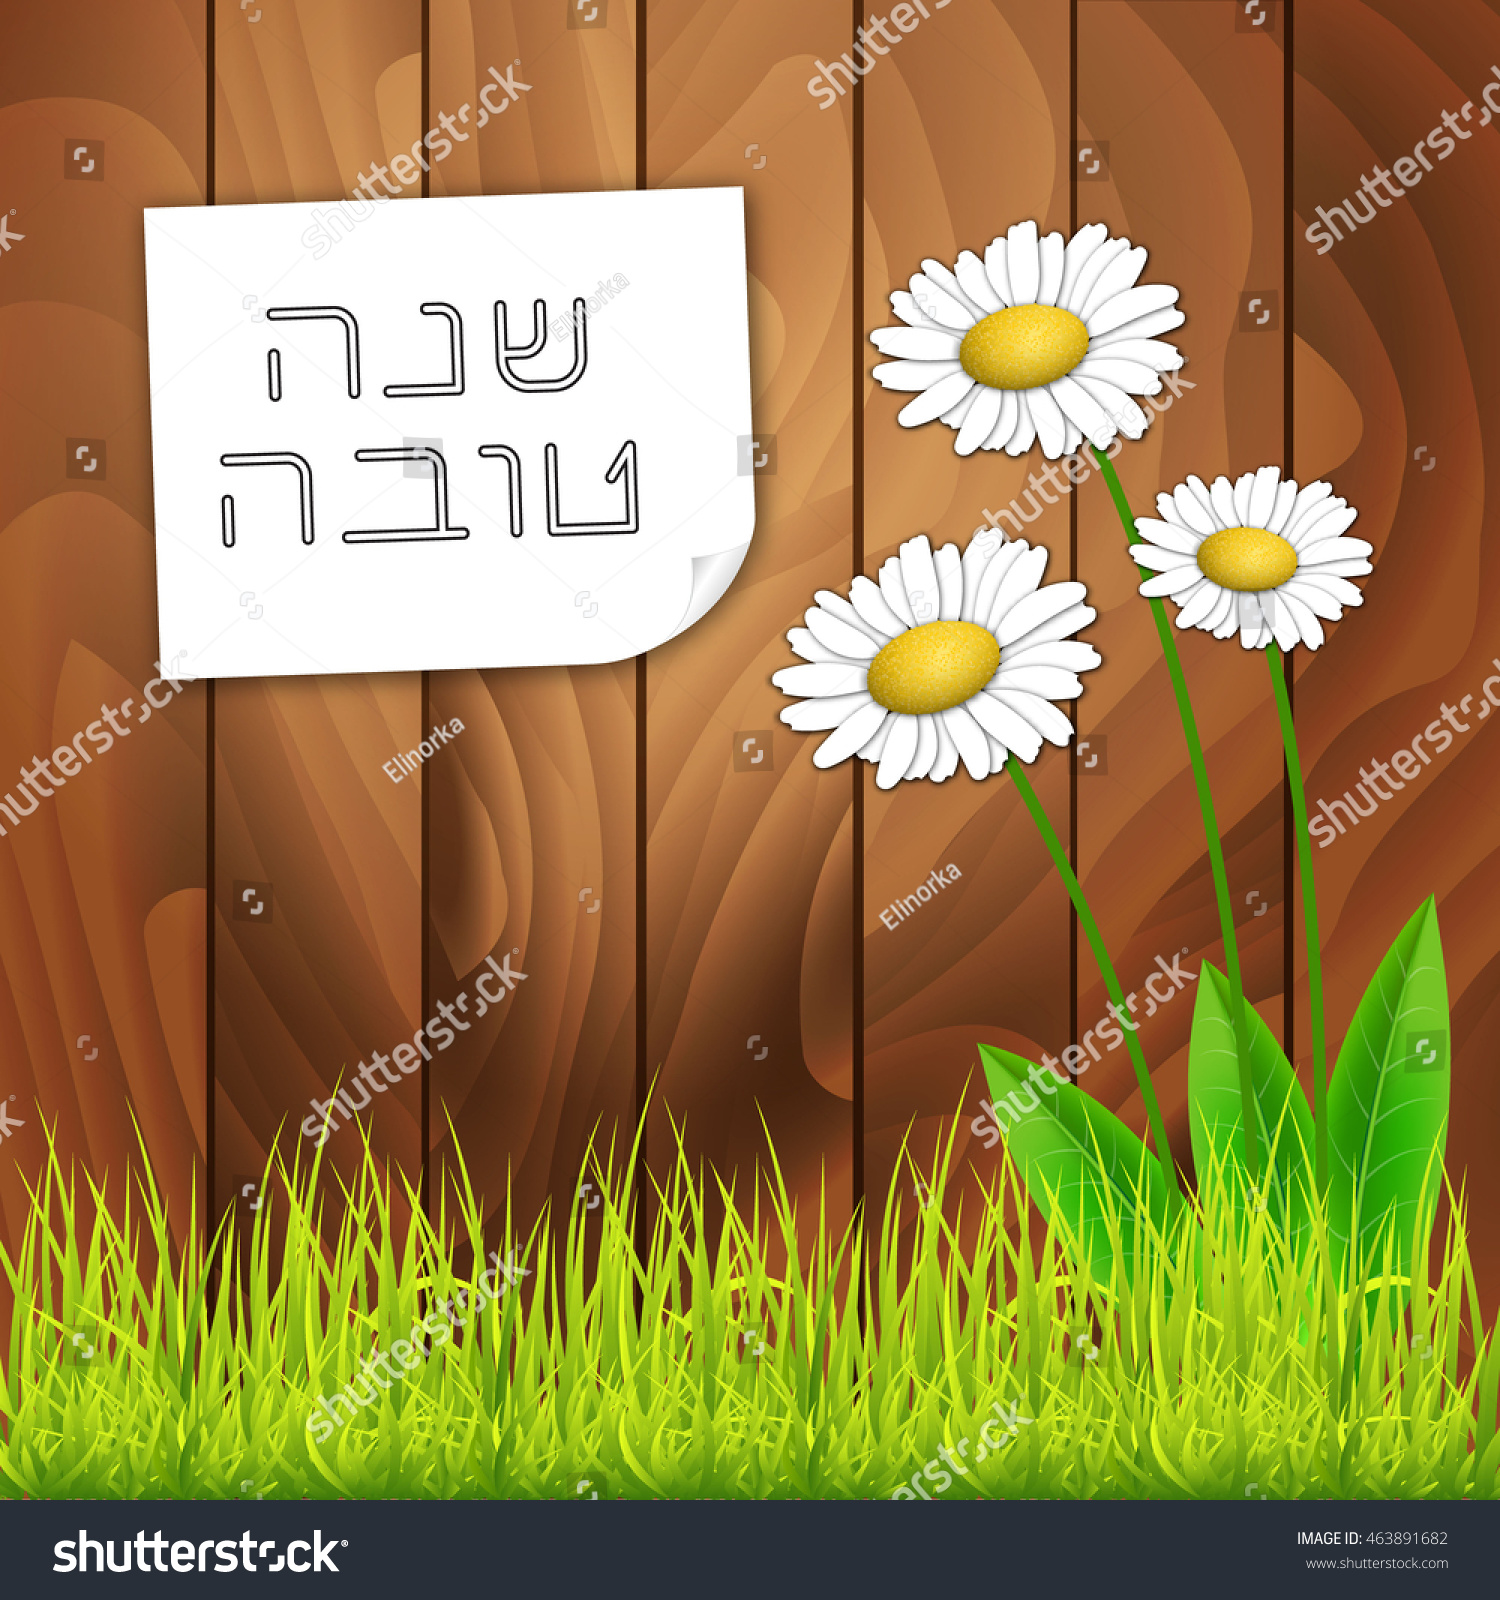 Rosh hashanah jewish new year greeting stock vector 463891682 rosh hashanah jewish new year greeting card with white flowers hebrew text kristyandbryce Image collections